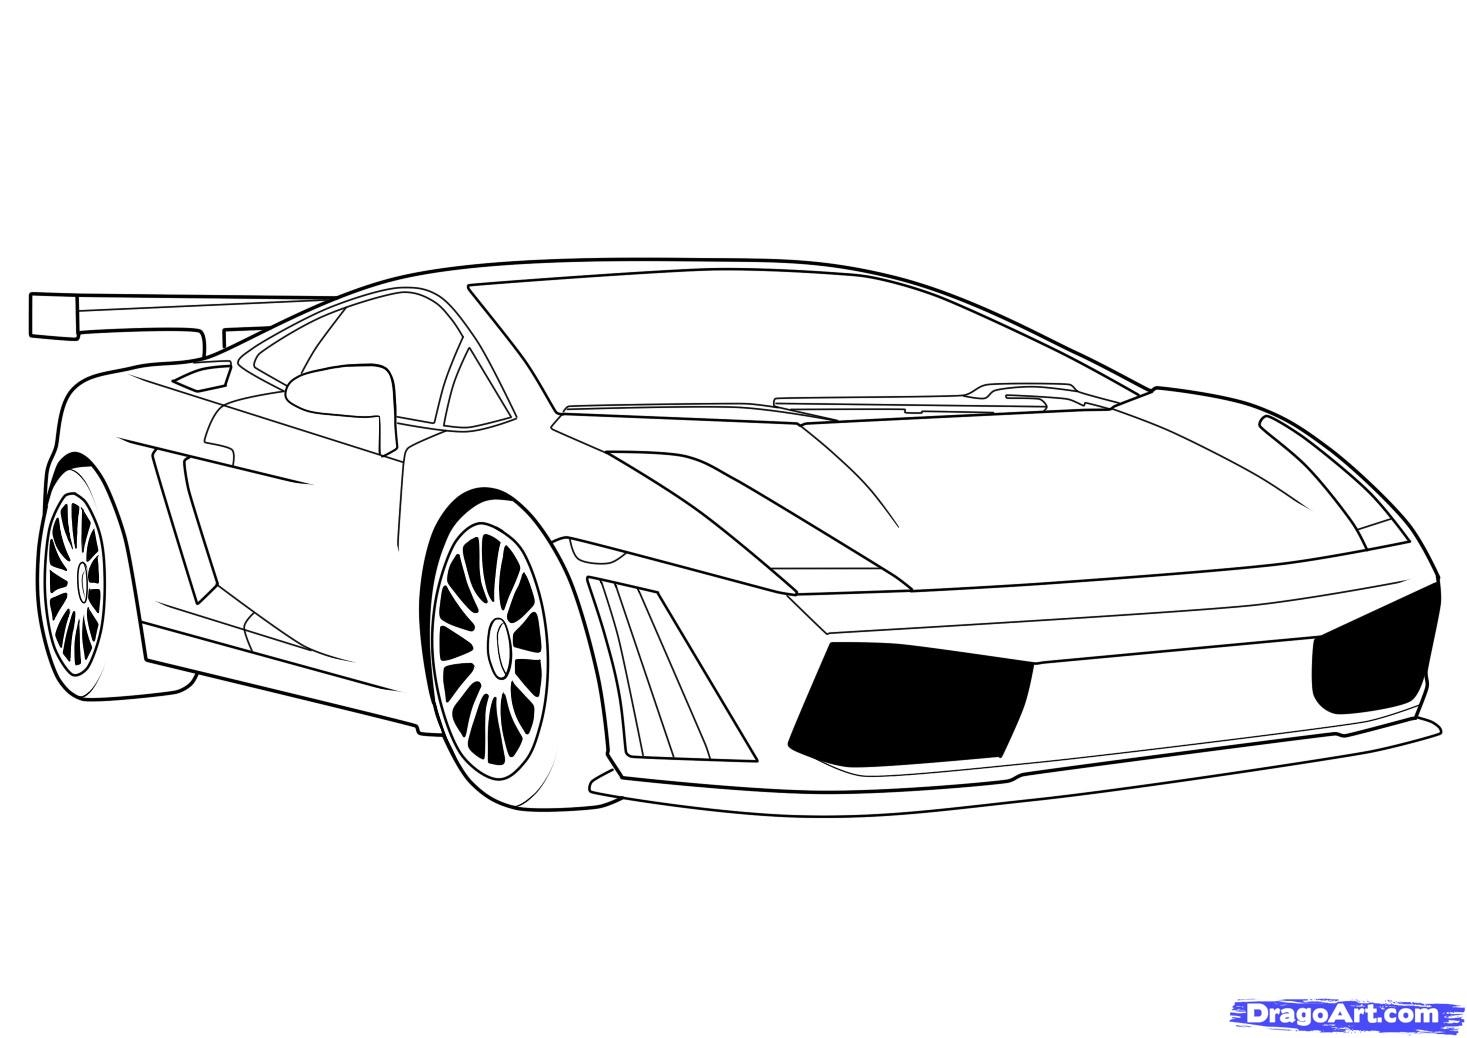 easy adult coloring pages - how to draw a lamborghini